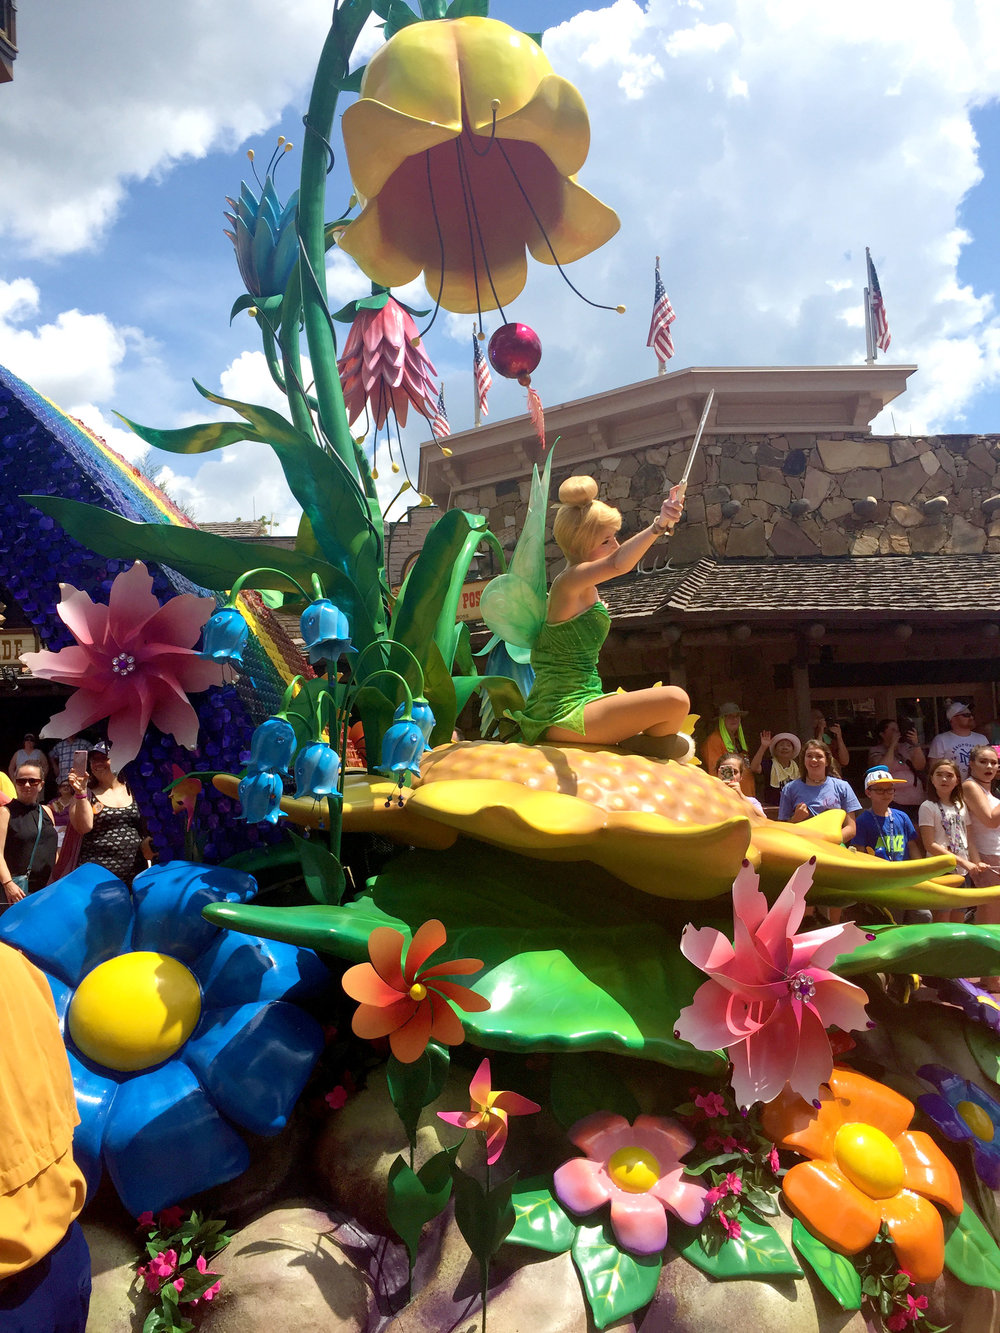 Tinkerbell sits on the tail end of the float. I love that they surrounded her with giant flowers, so you get a sense of her true size as a fairy.